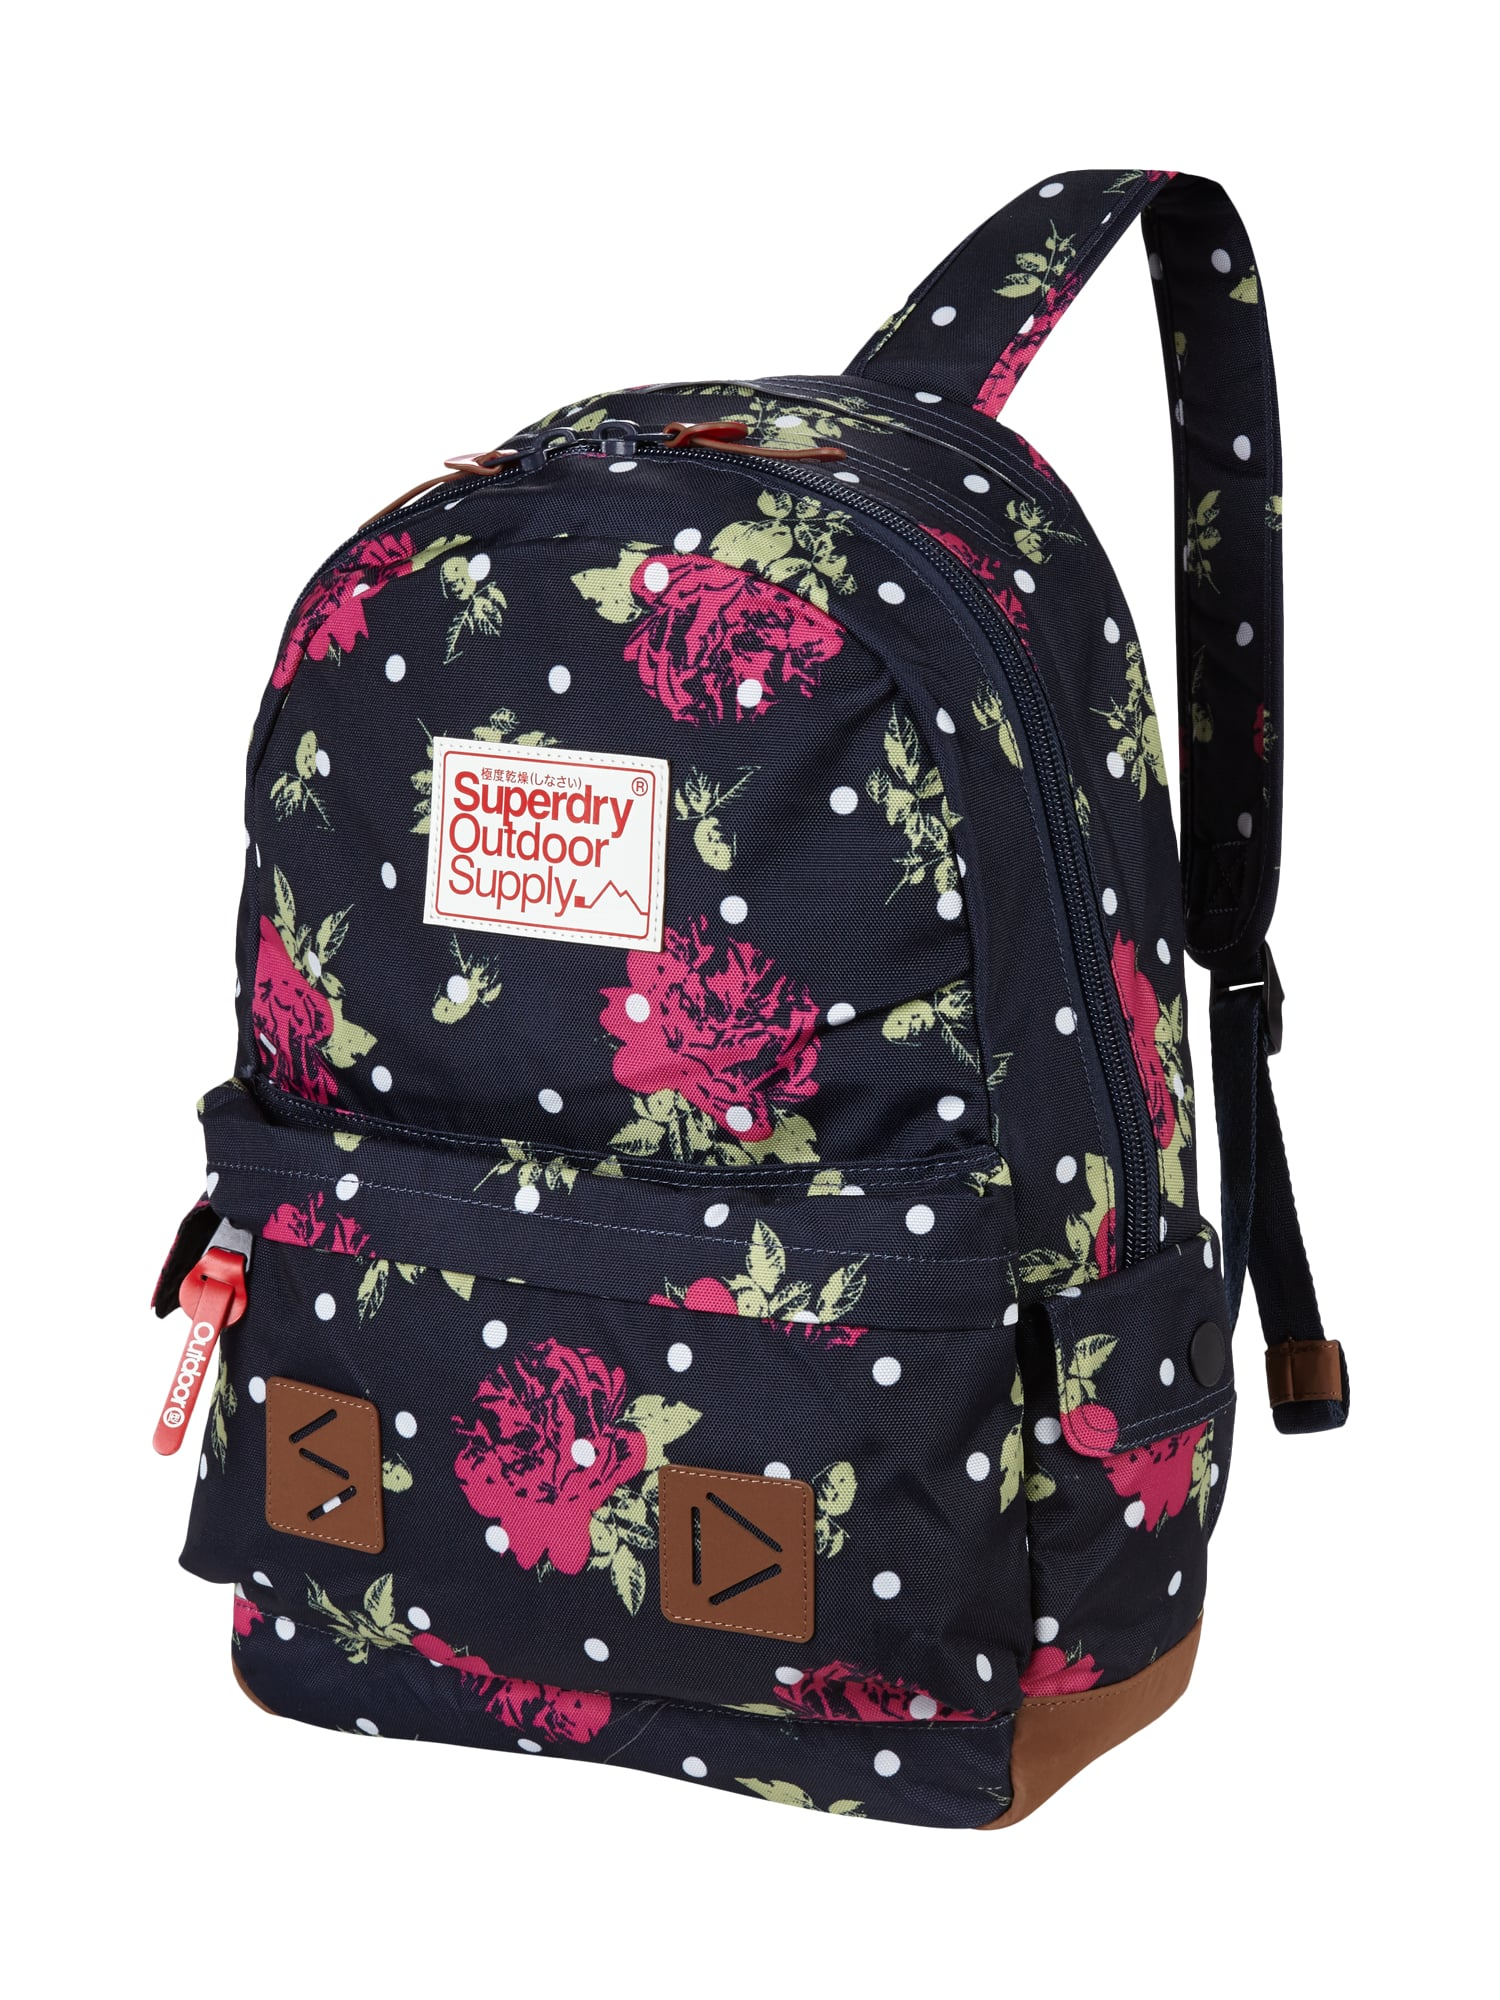 new product 6fc46 a852d SUPERDRY Rucksack mit floralem Allover-Print in Blau ...